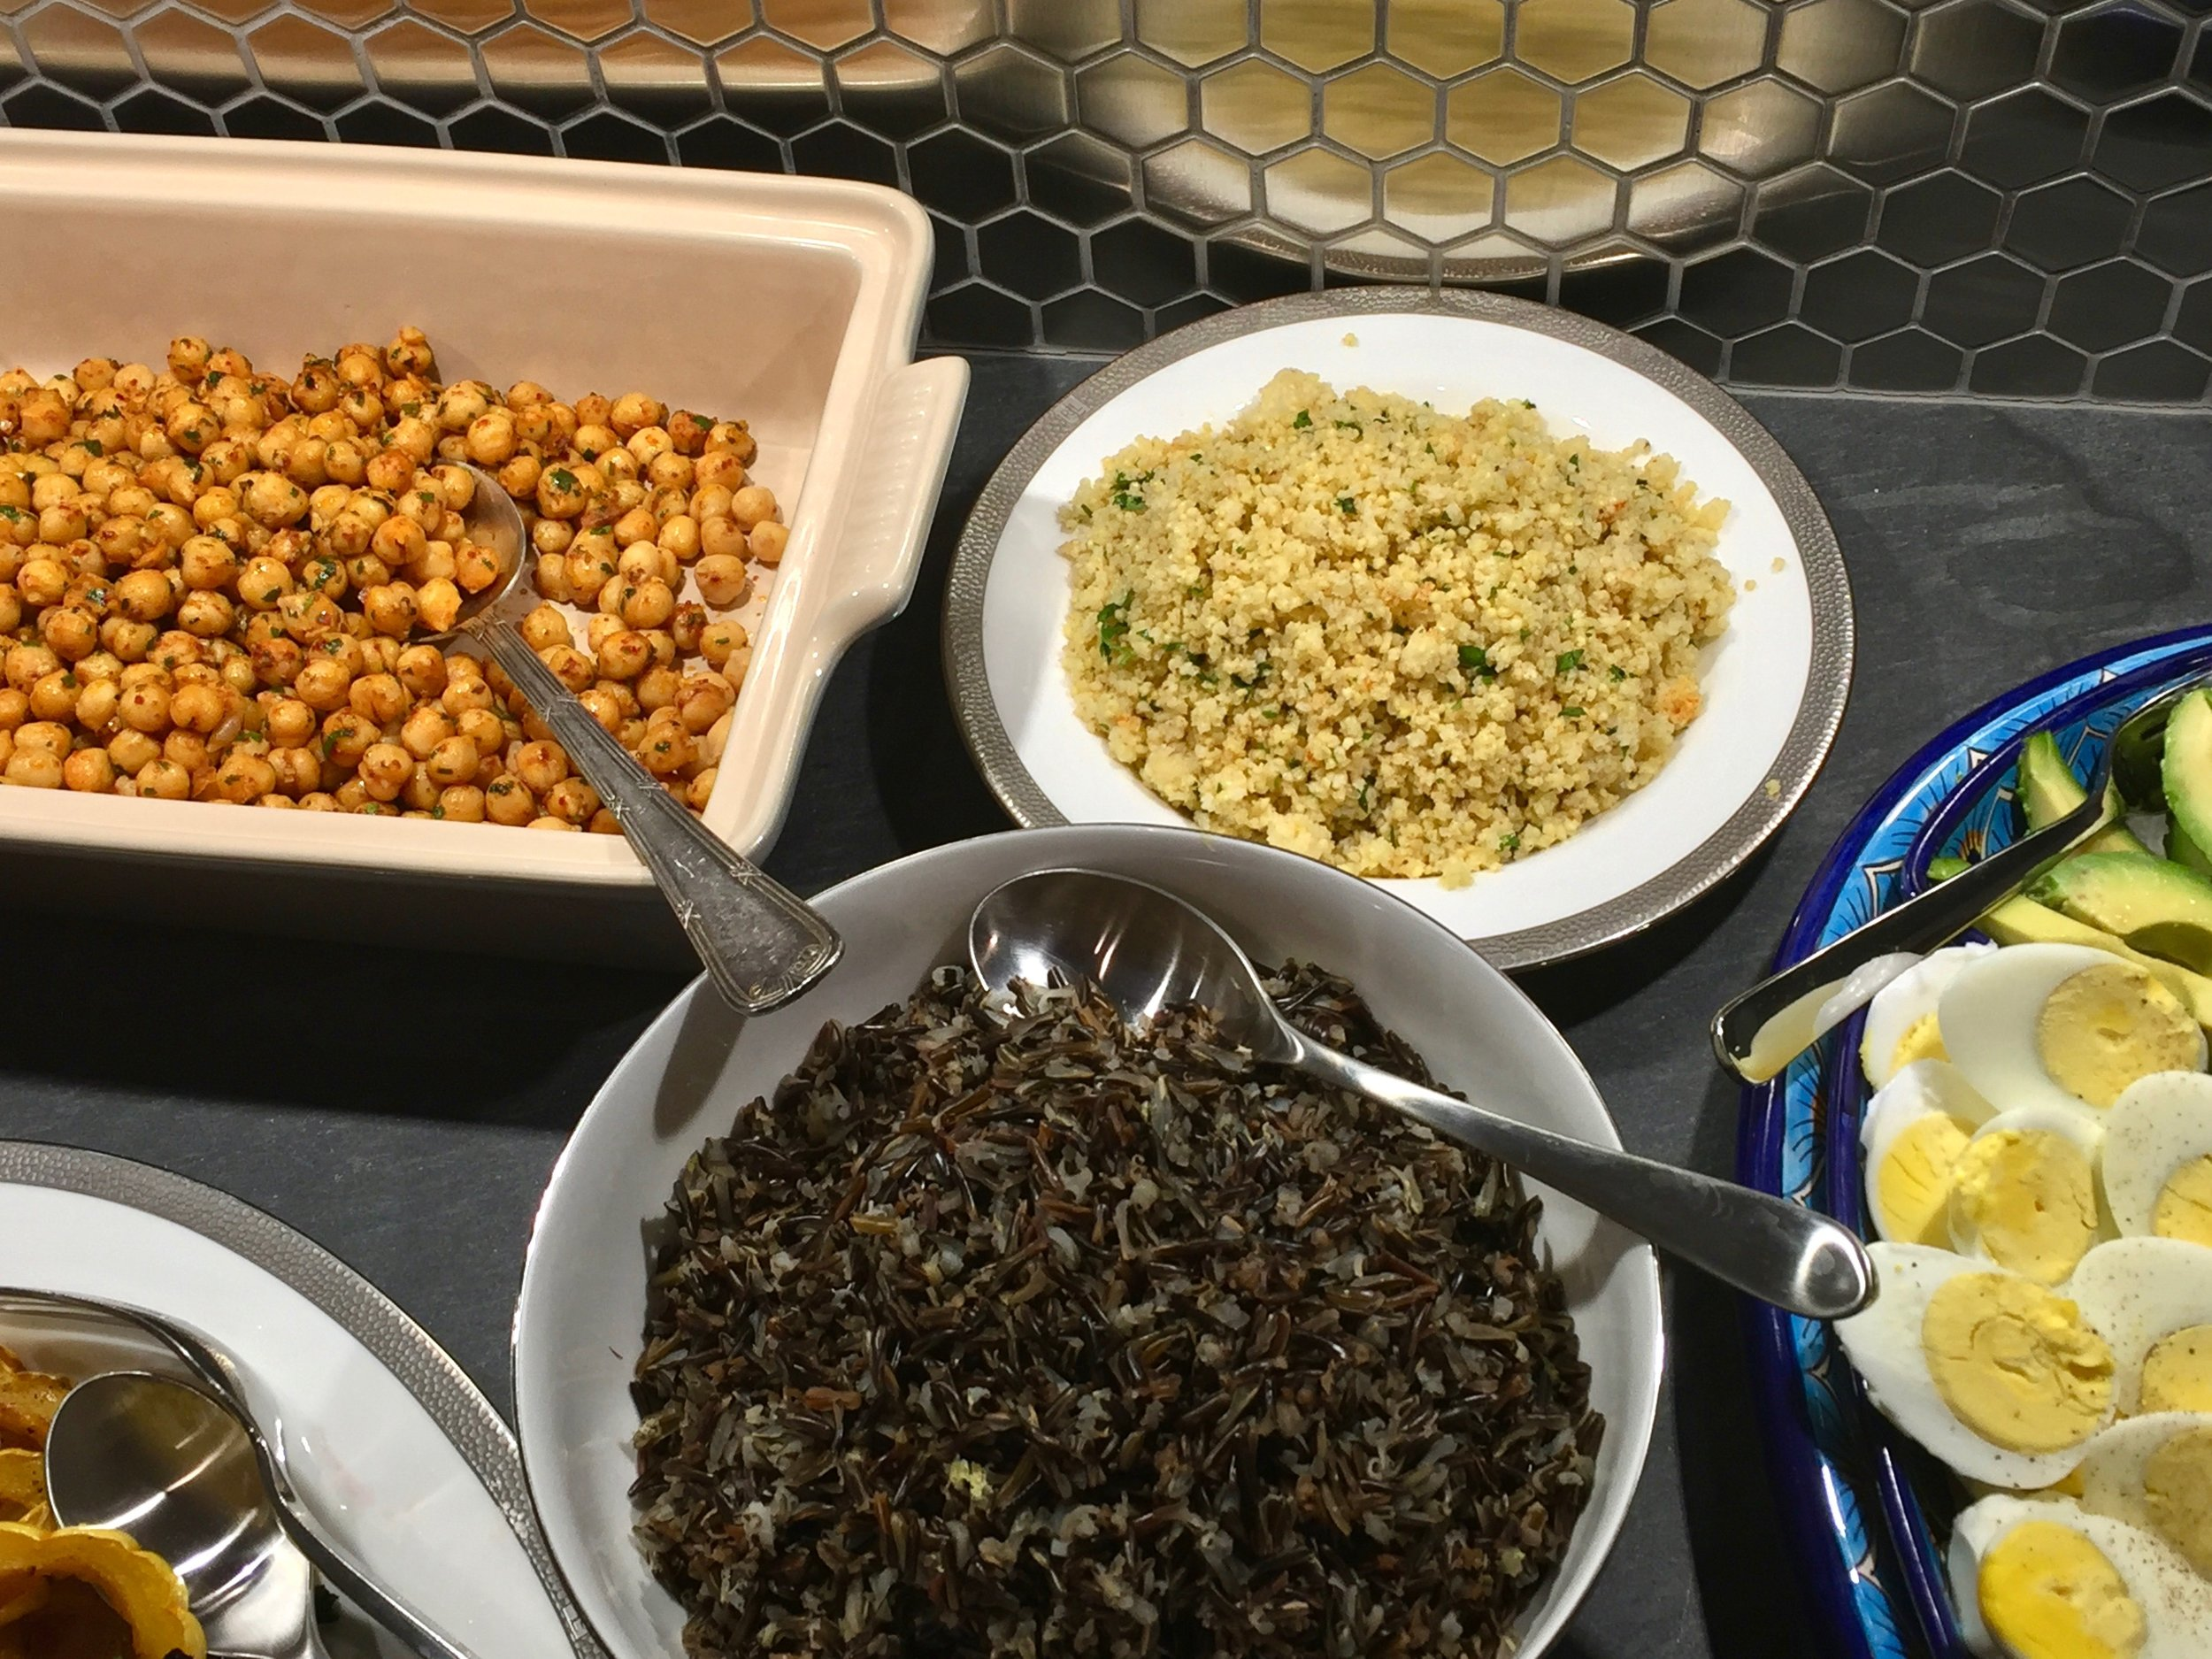 Both wild rice and millet add great flavor and texture to the buffet.